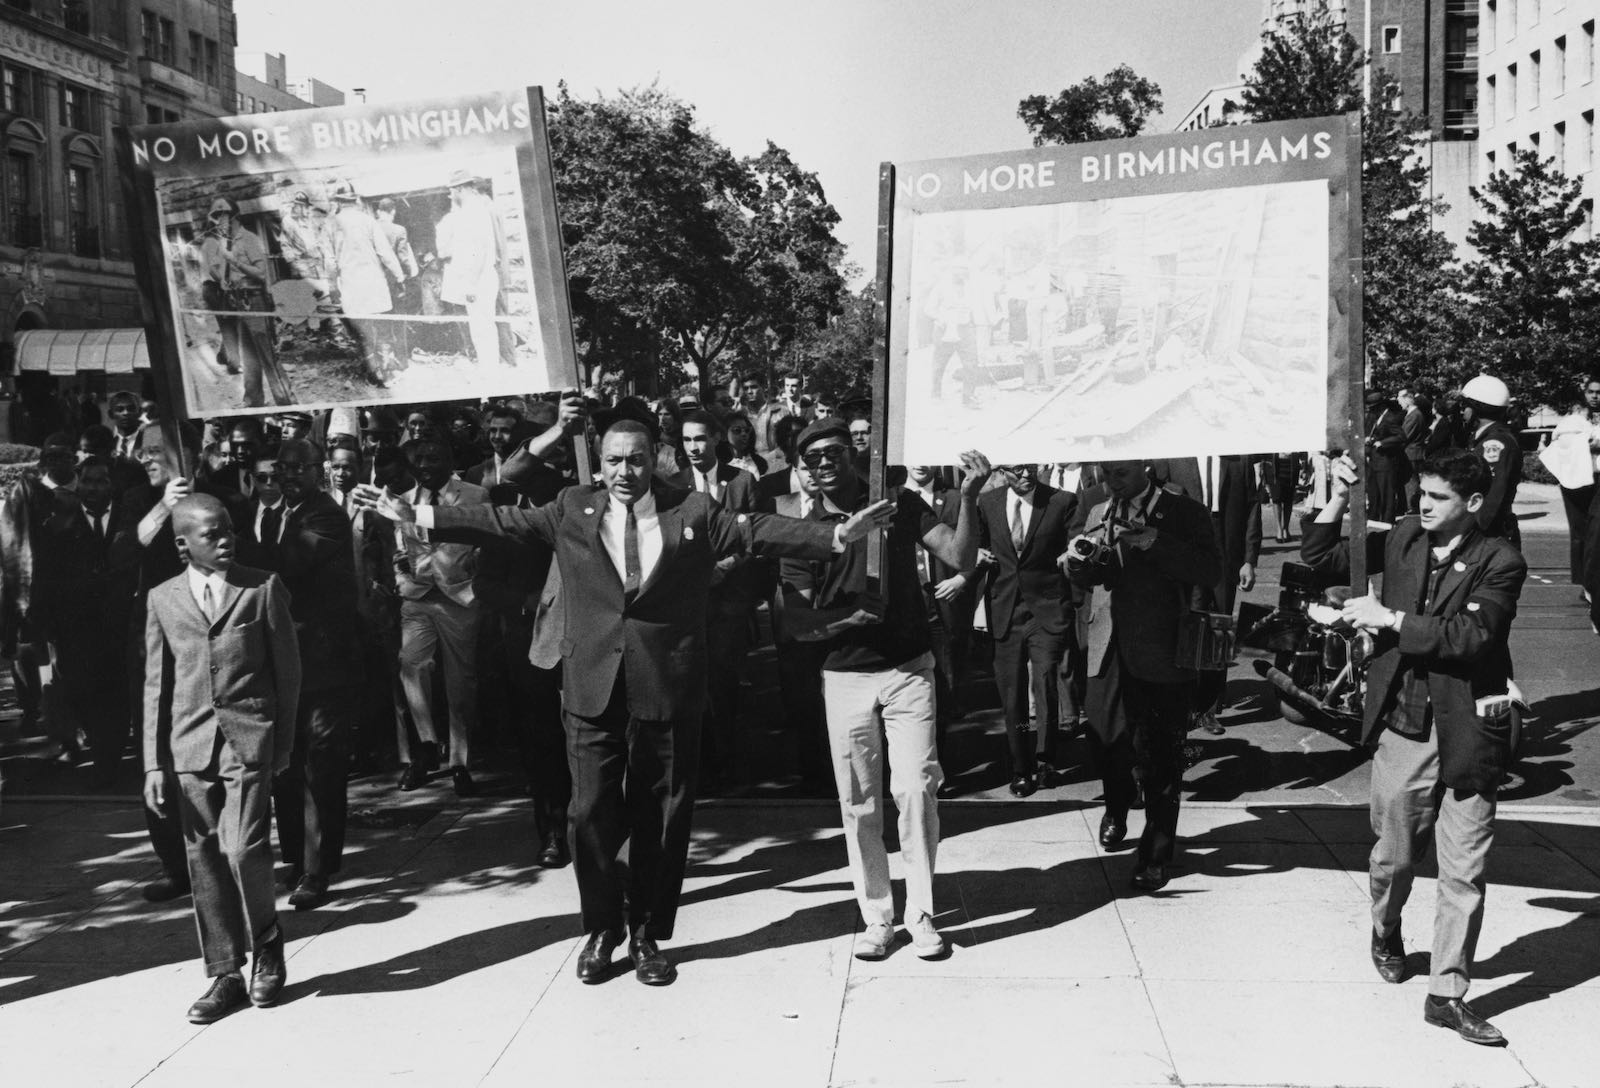 Civil rights demonstrators holding placards, 1963